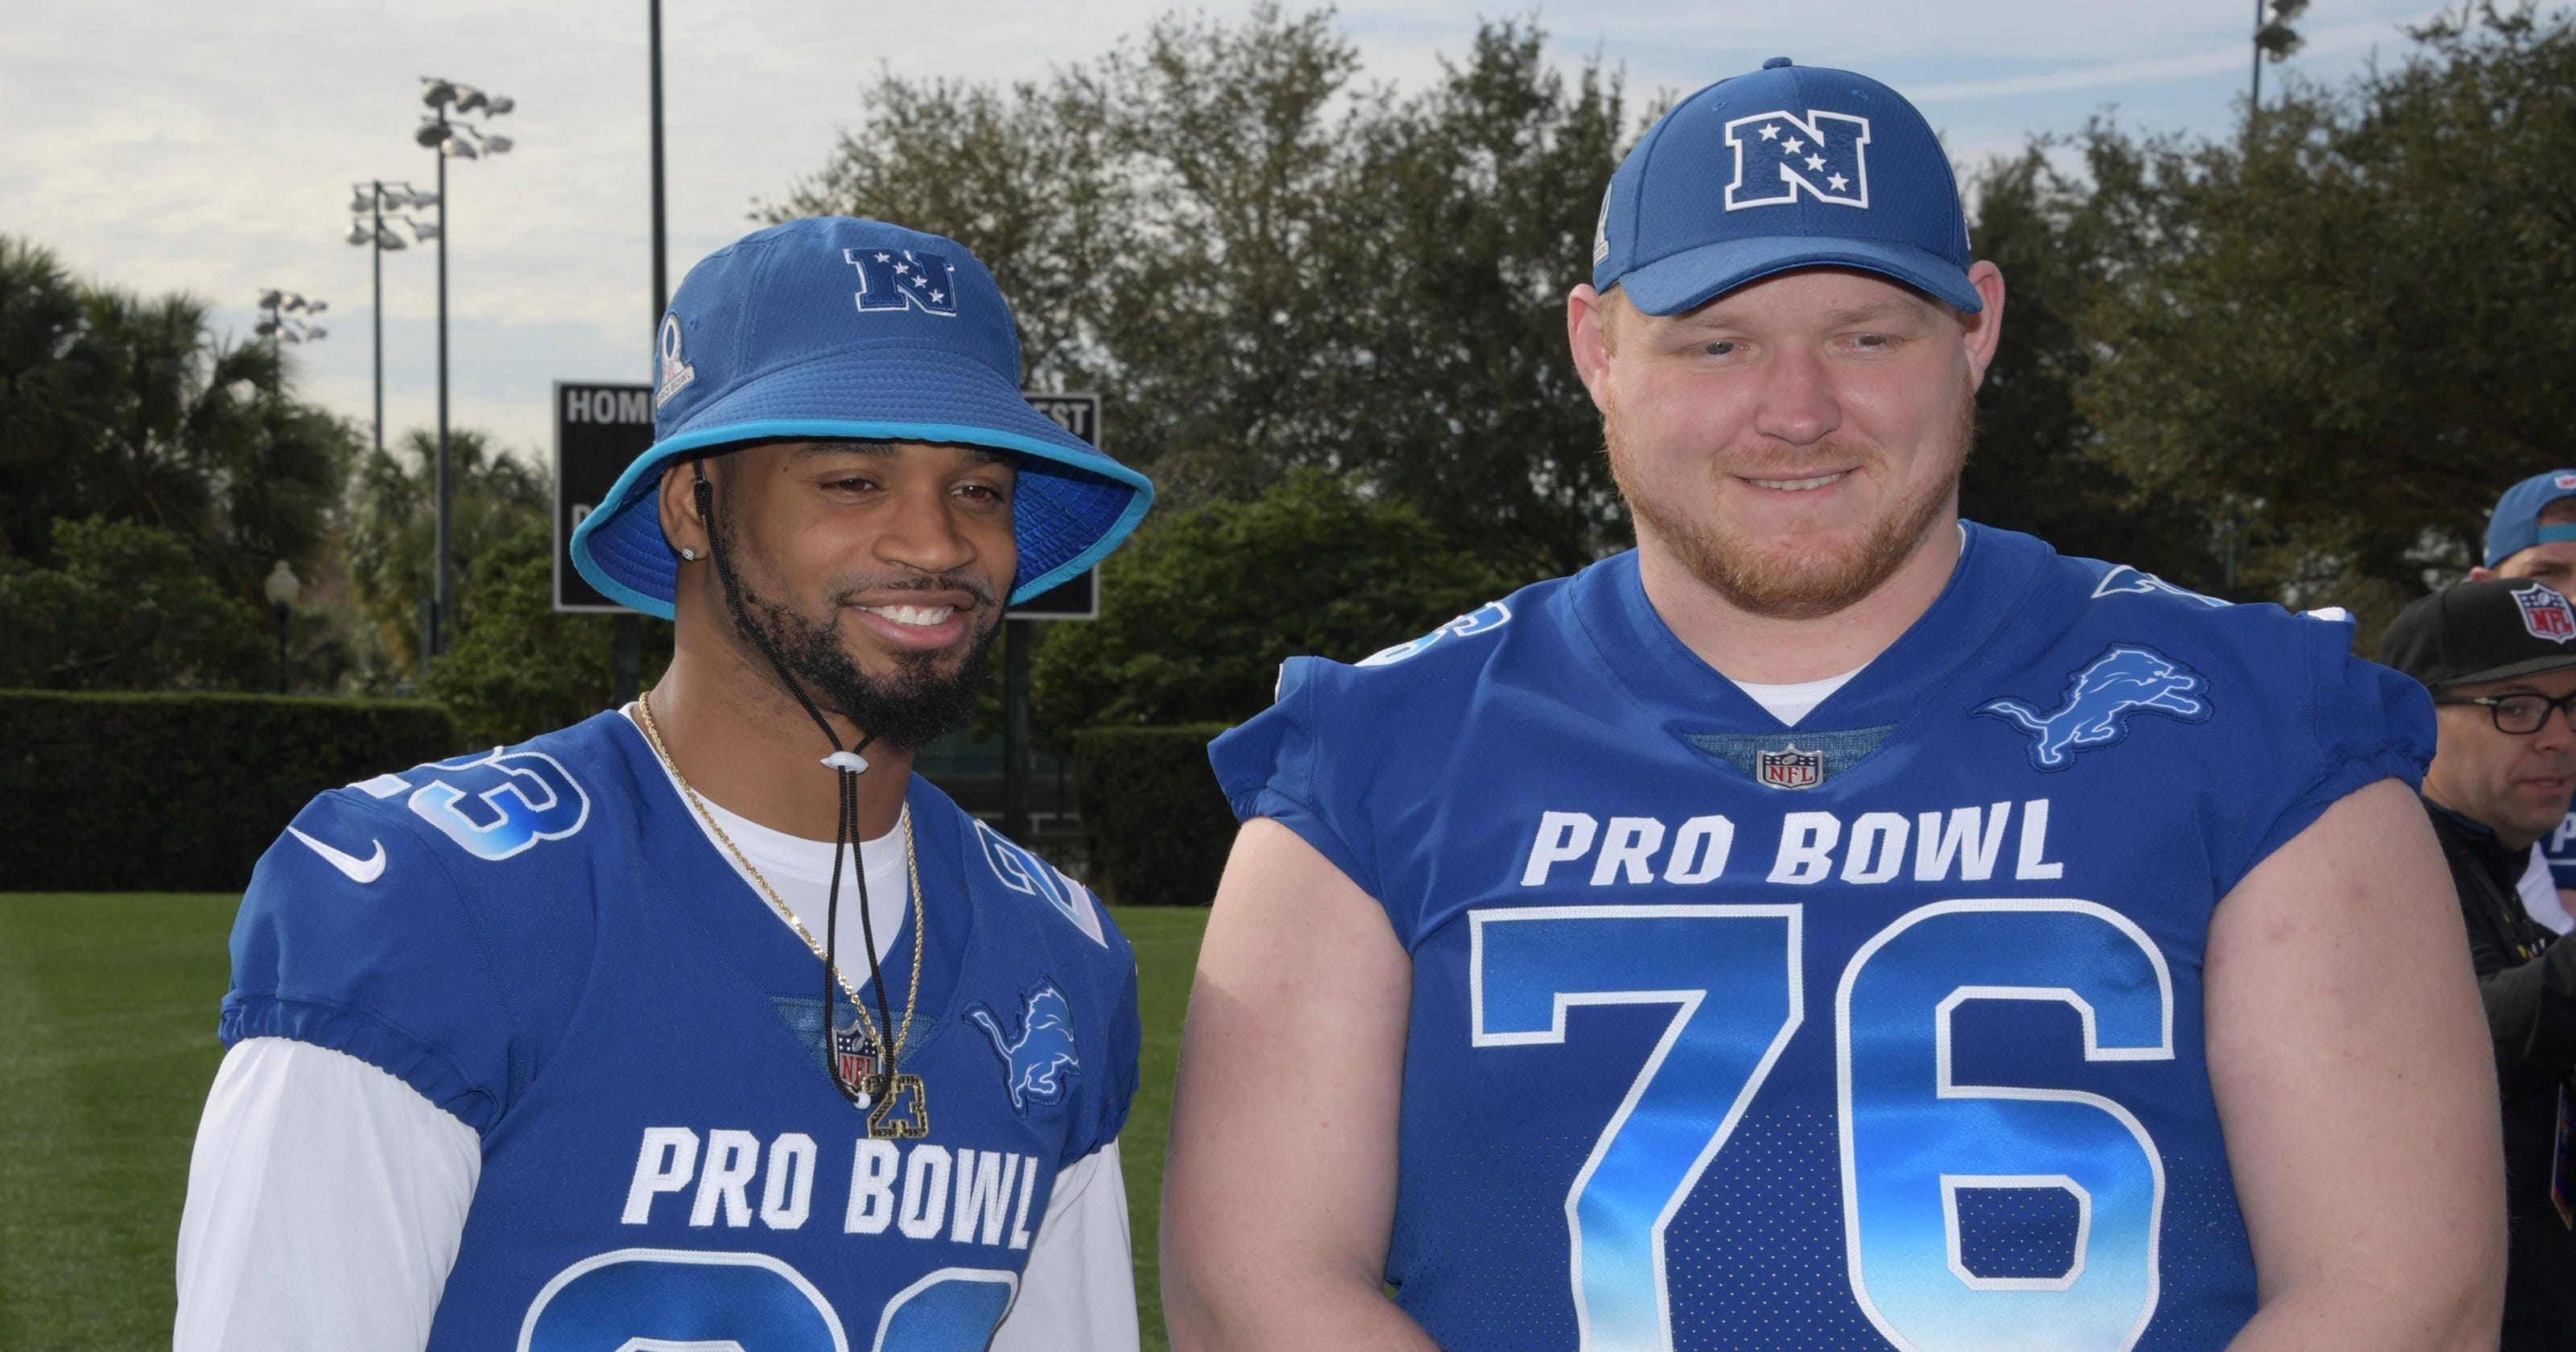 buy popular 45dfe 54048 Pro Bowl: Lions' Slay, Lang record tackles; AFC wins on late TD